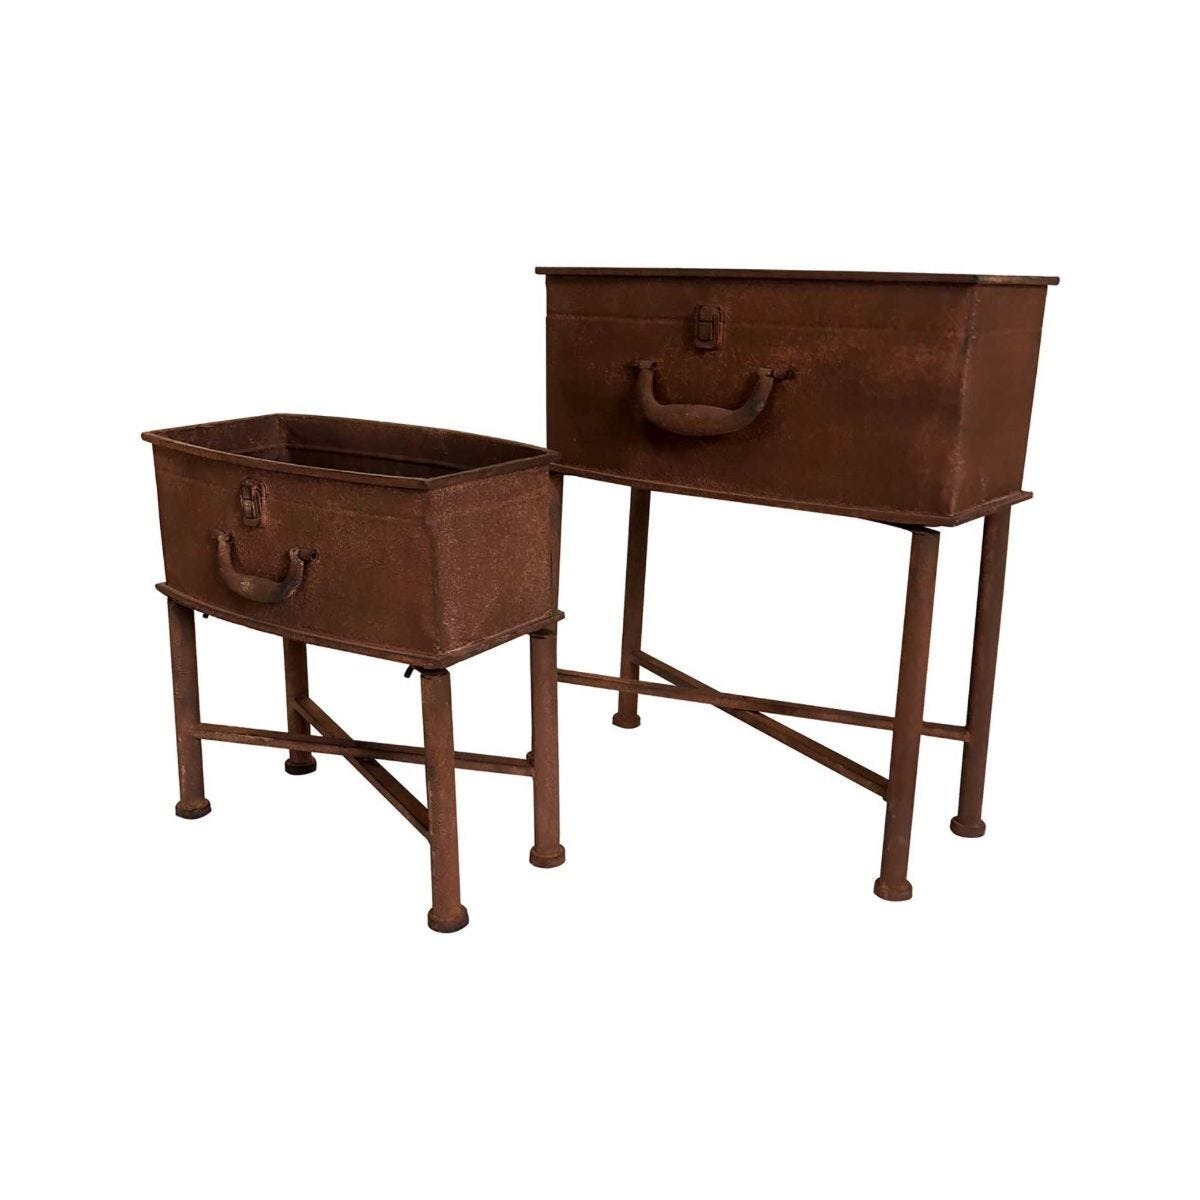 Charles Bentley Set of 2 Rust Effect Suitcase Planters